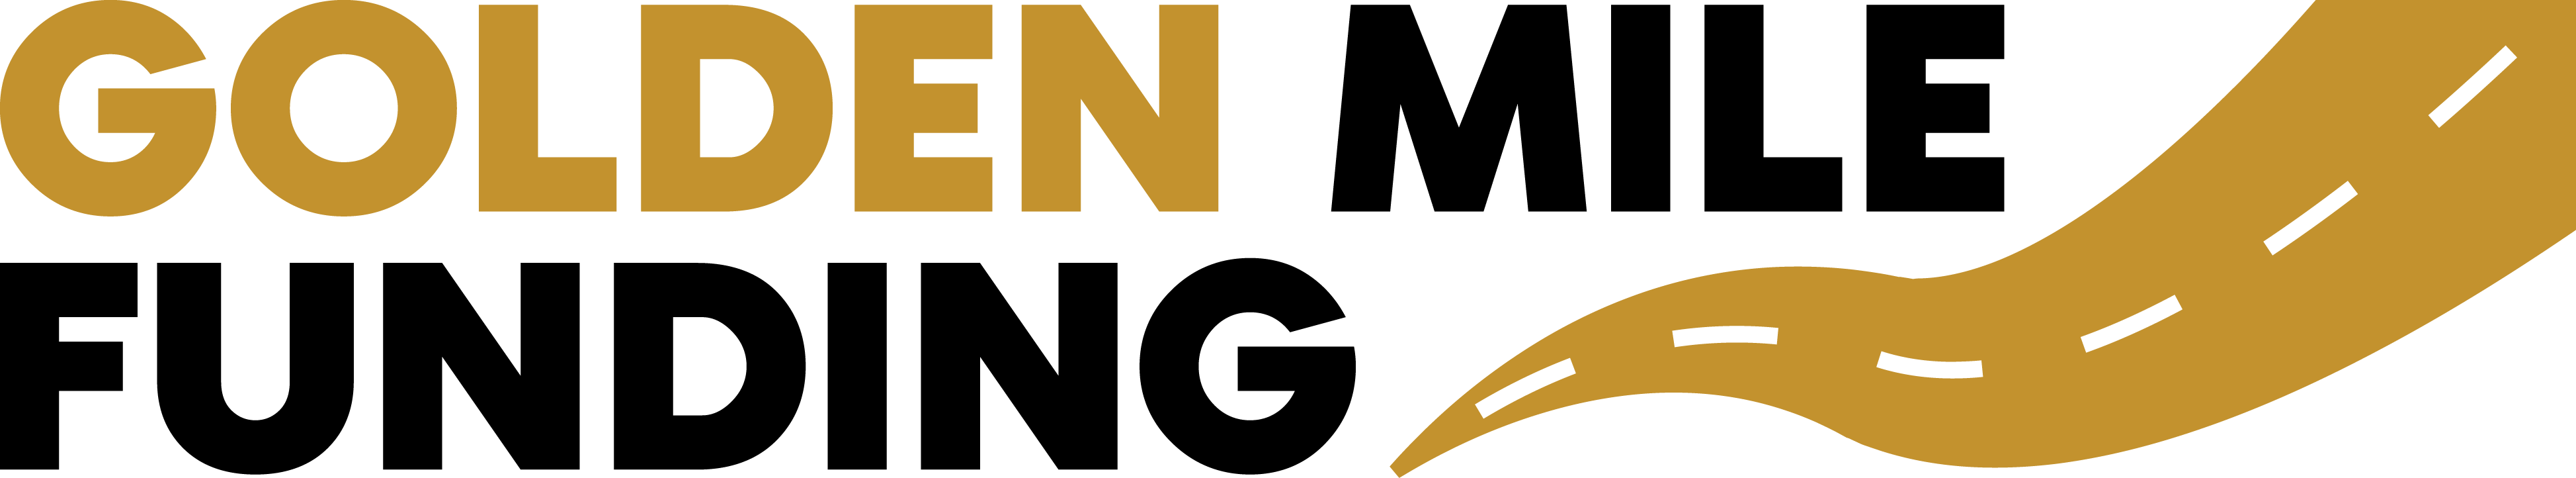 Golden Mile Equipment Financing